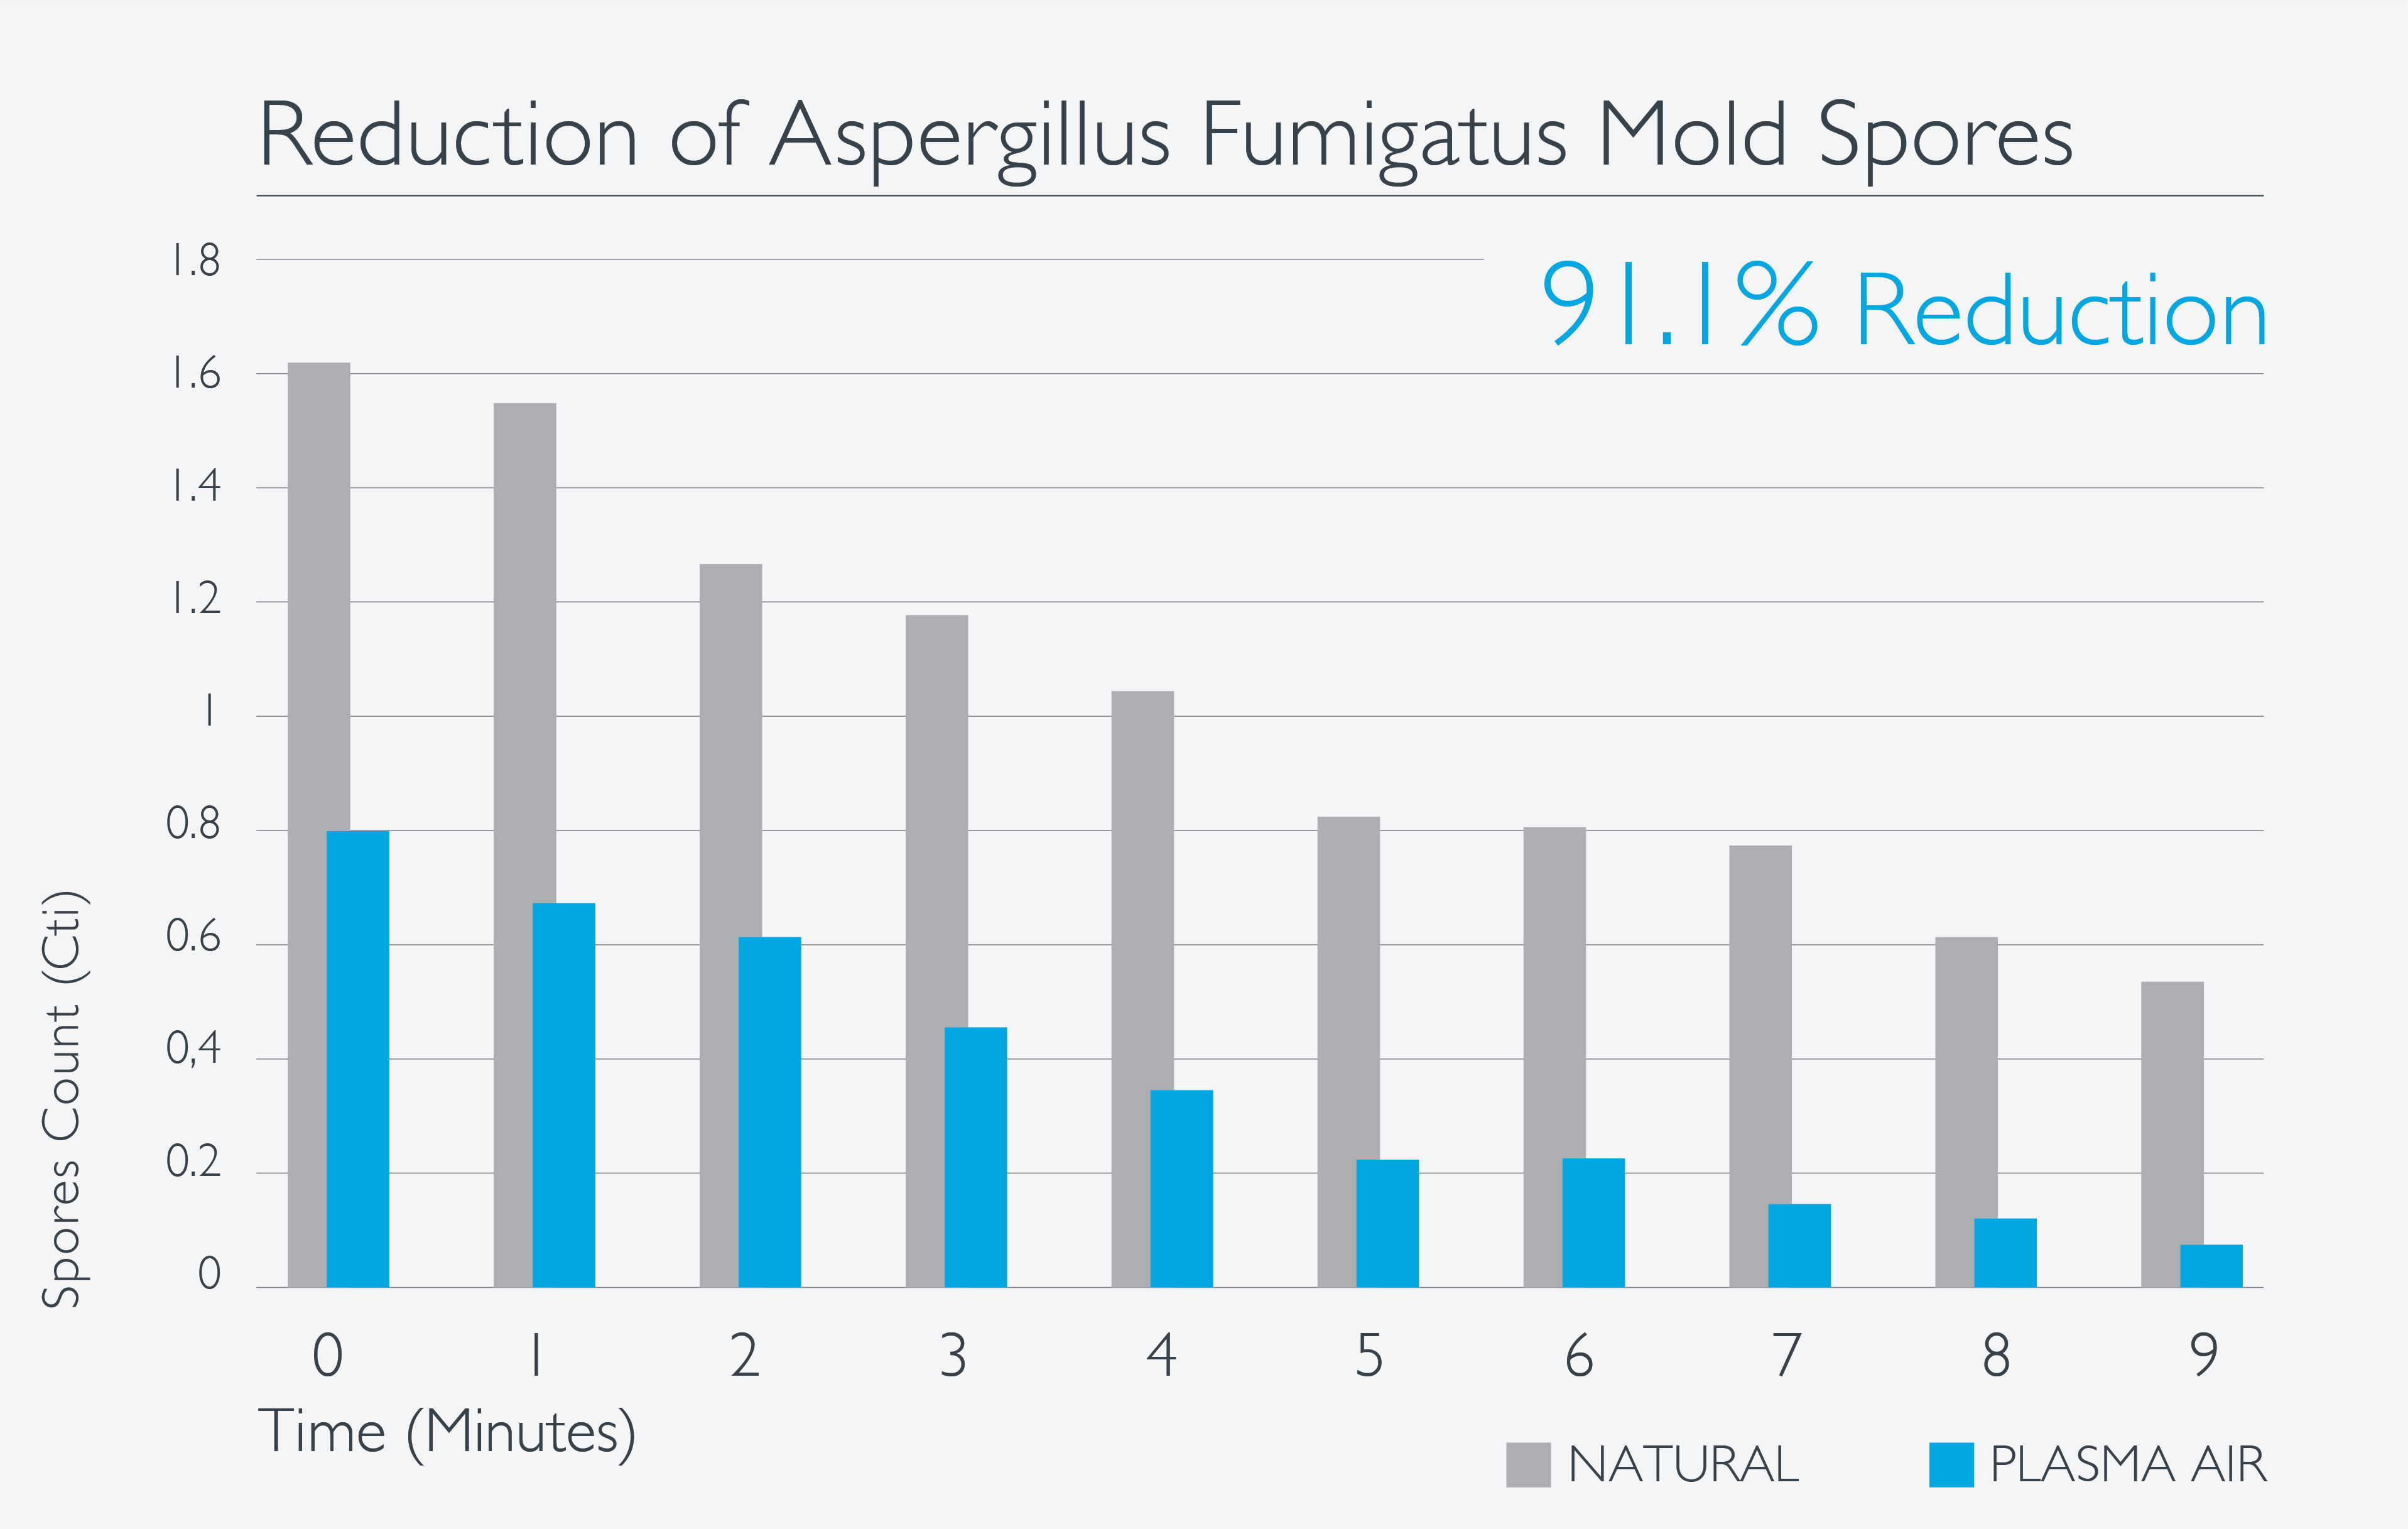 Aspergillus_Fumigatus_Reduction_Graph.jpg